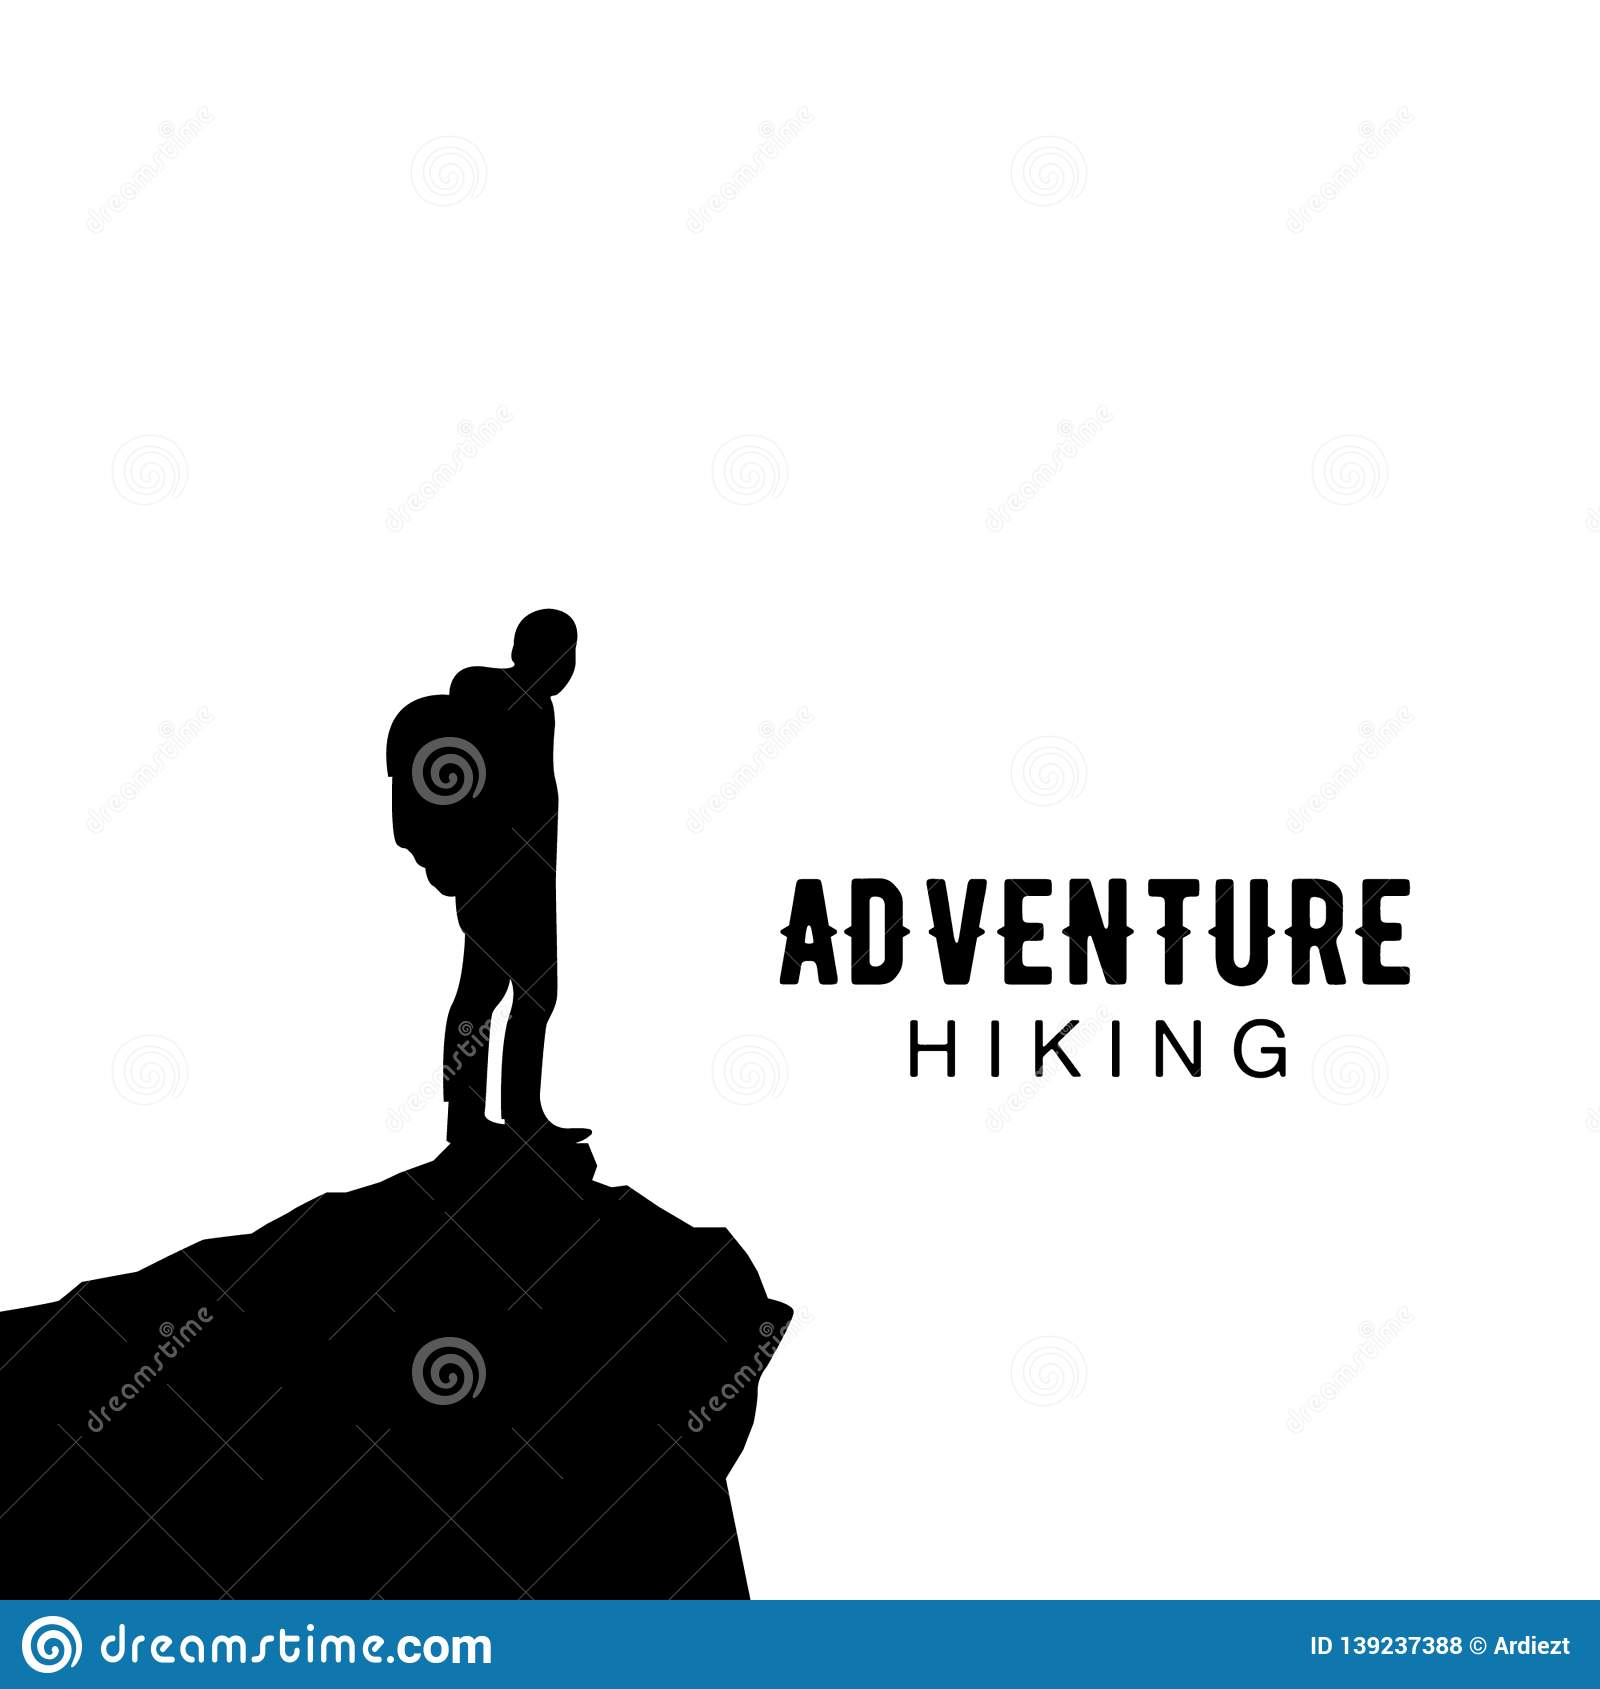 Hiking Club Expedition Logo Stock Vector Illustration Of Expedition Icon 139237388